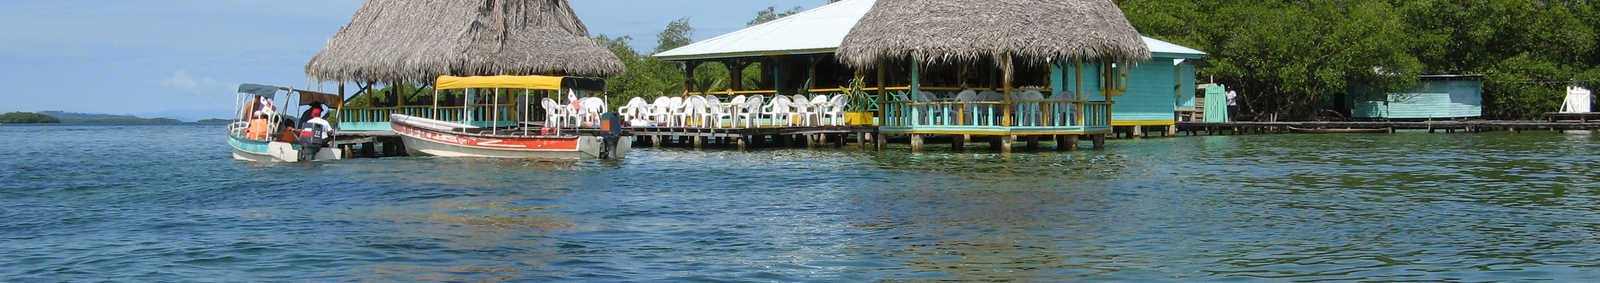 Waterside restaurant, Bocas del Toro Islands, Panama